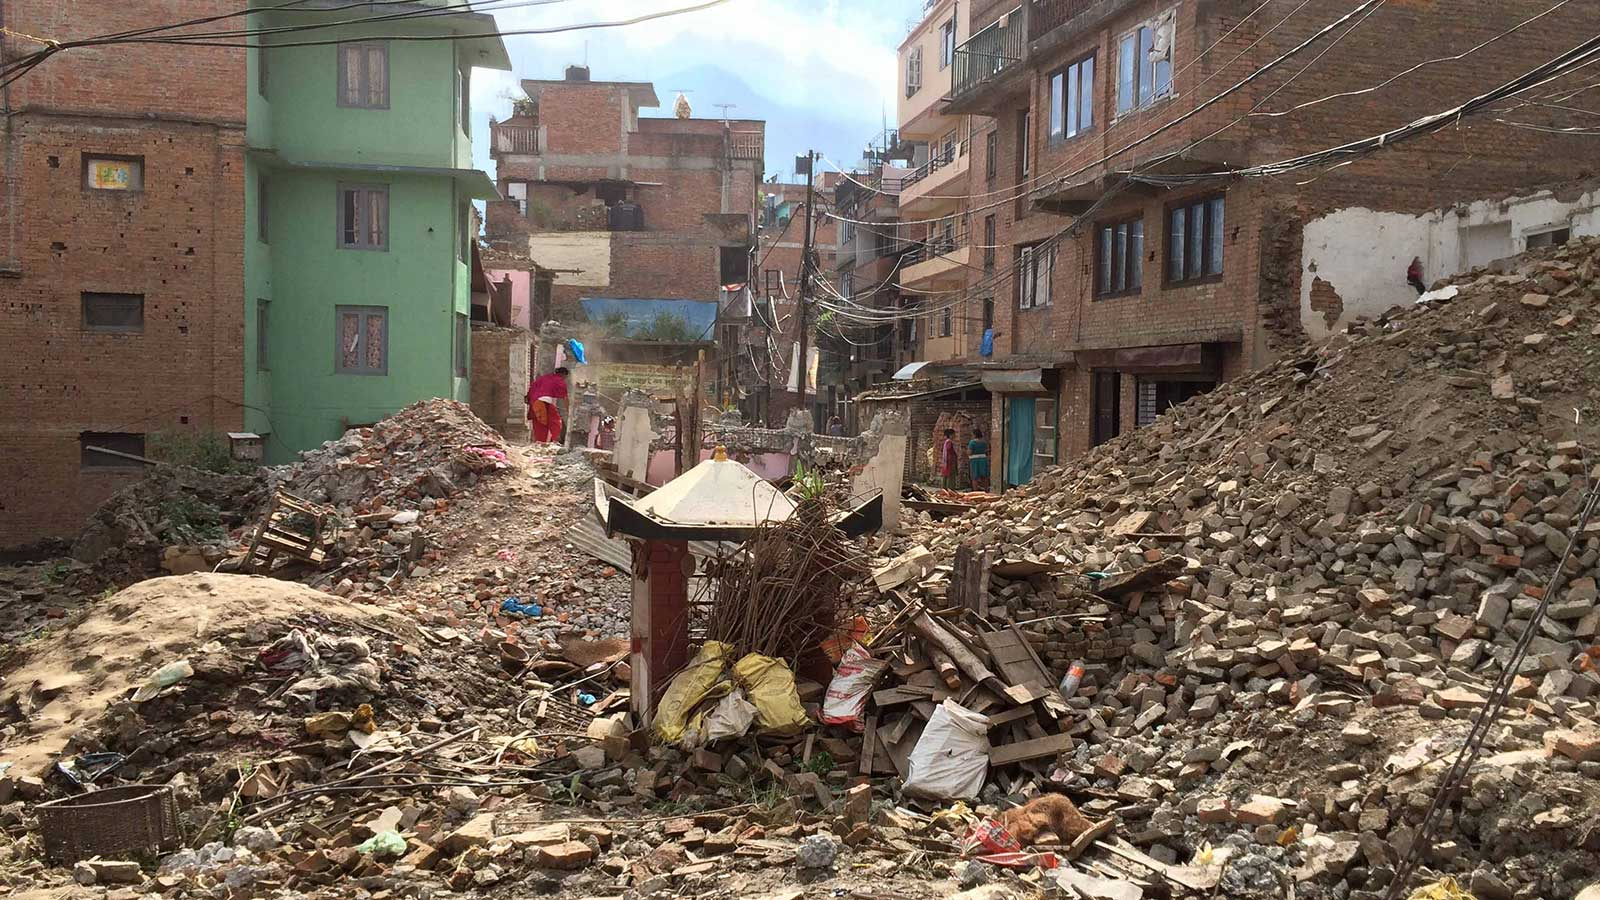 Rubble on the streets of Nepal